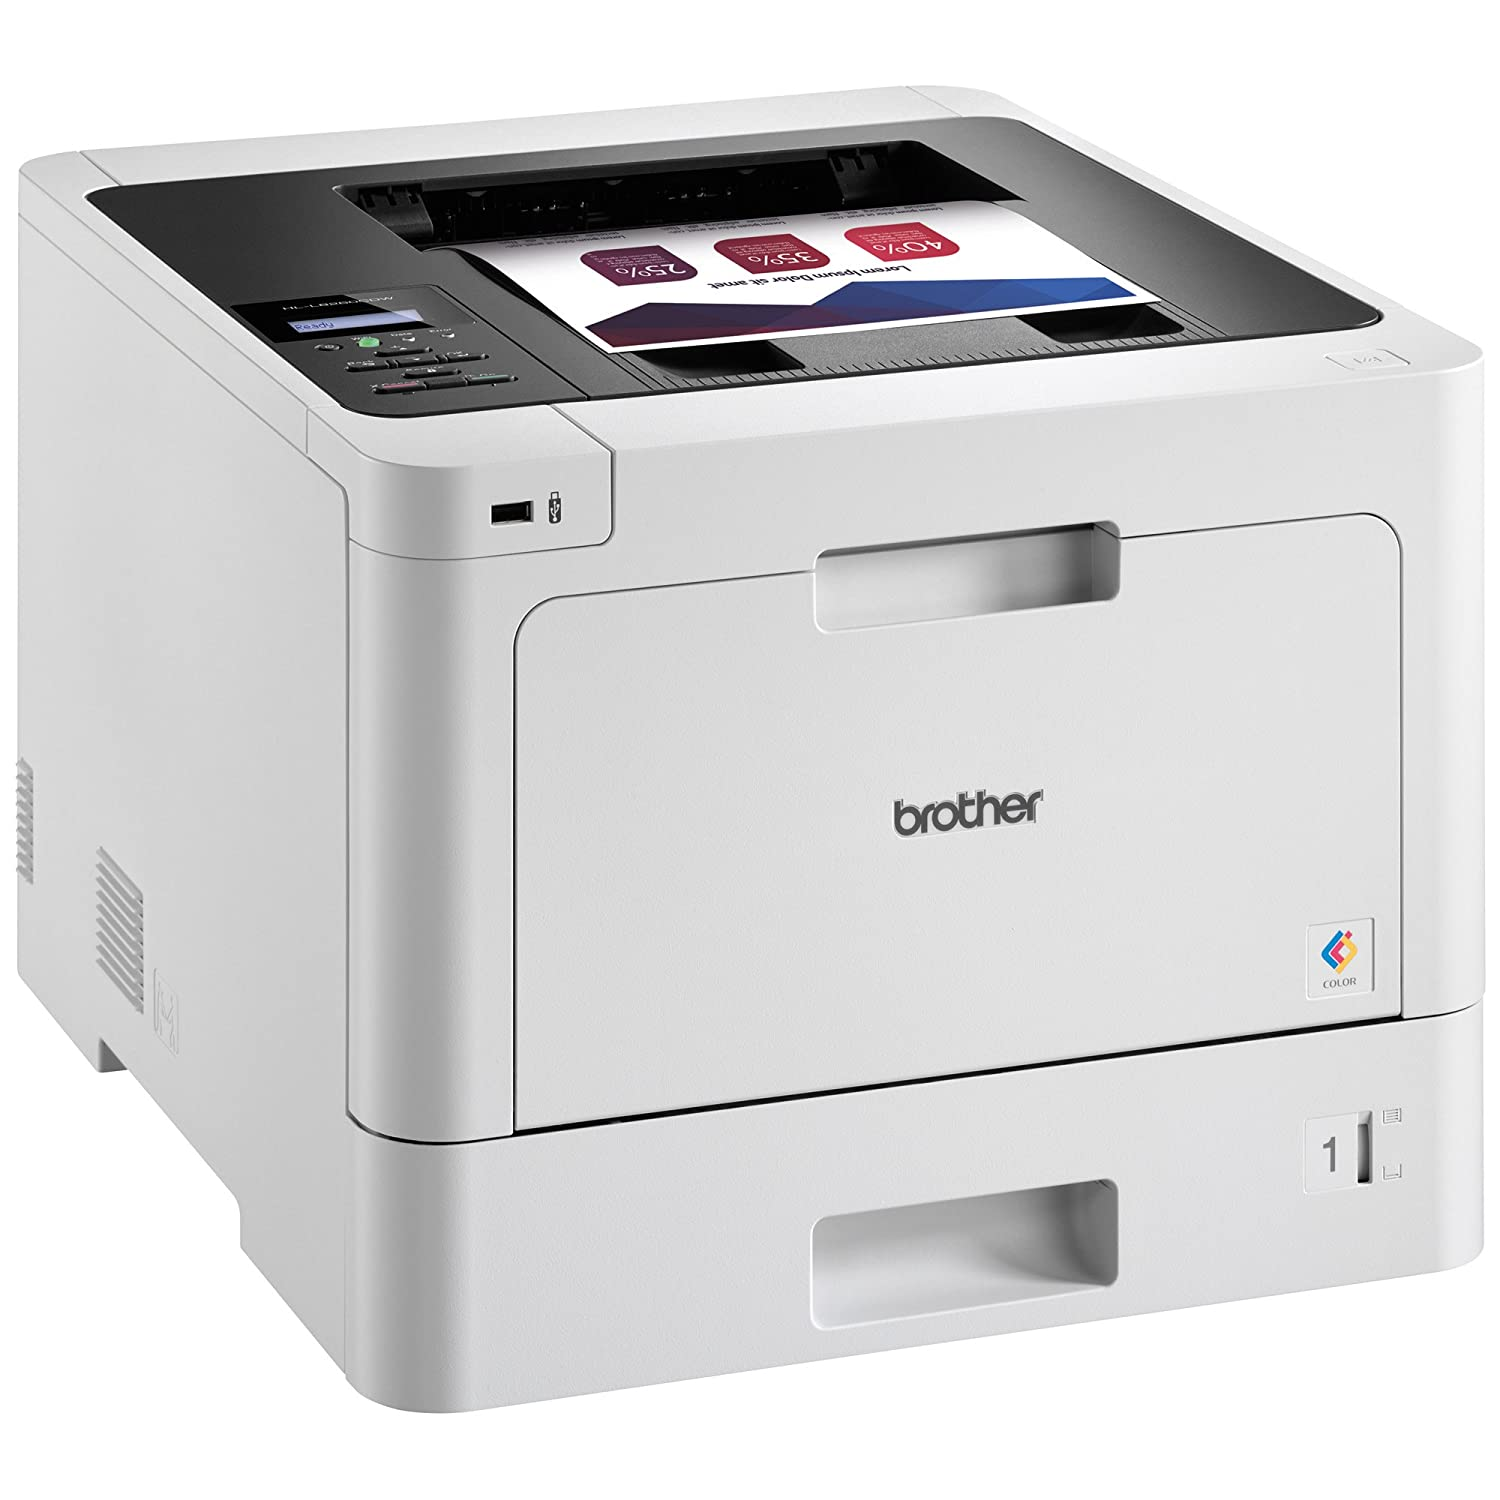 Color printing vs black and white cost - Amazon Com Brother Printer Hll8260cdw Business Color Laser Printer With Duplex Printing And Wireless Networking Electronics